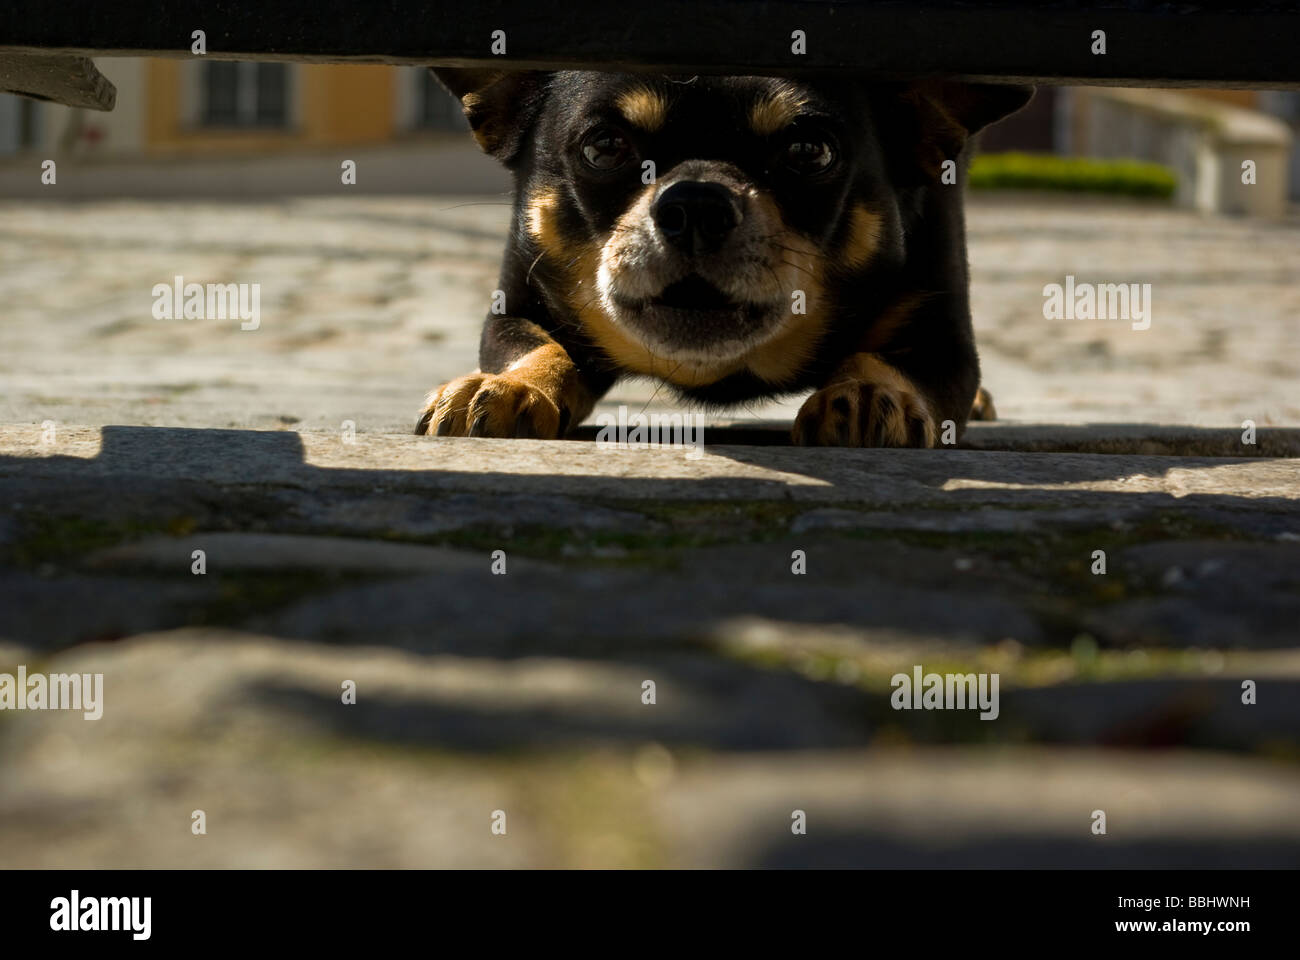 Angry, barking dog under the fence mongrel - Stock Image